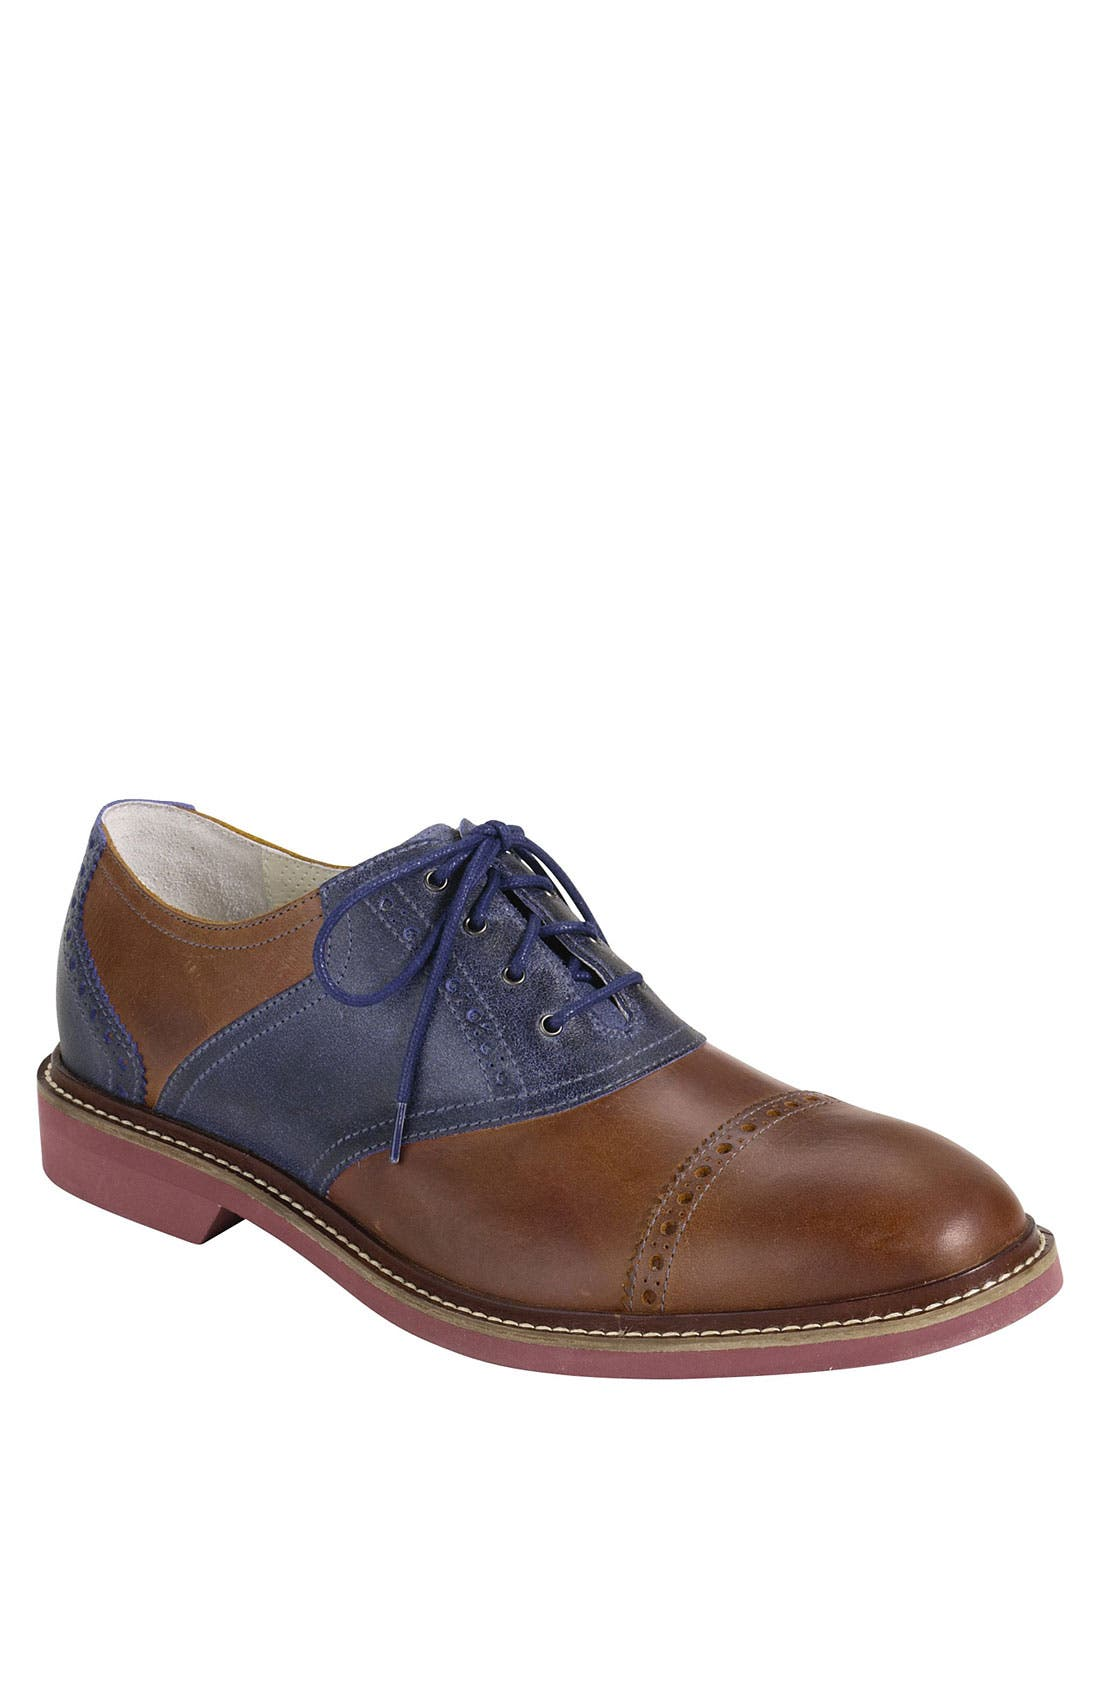 Main Image - Cole Haan 'Air Franklin' Saddle Oxford